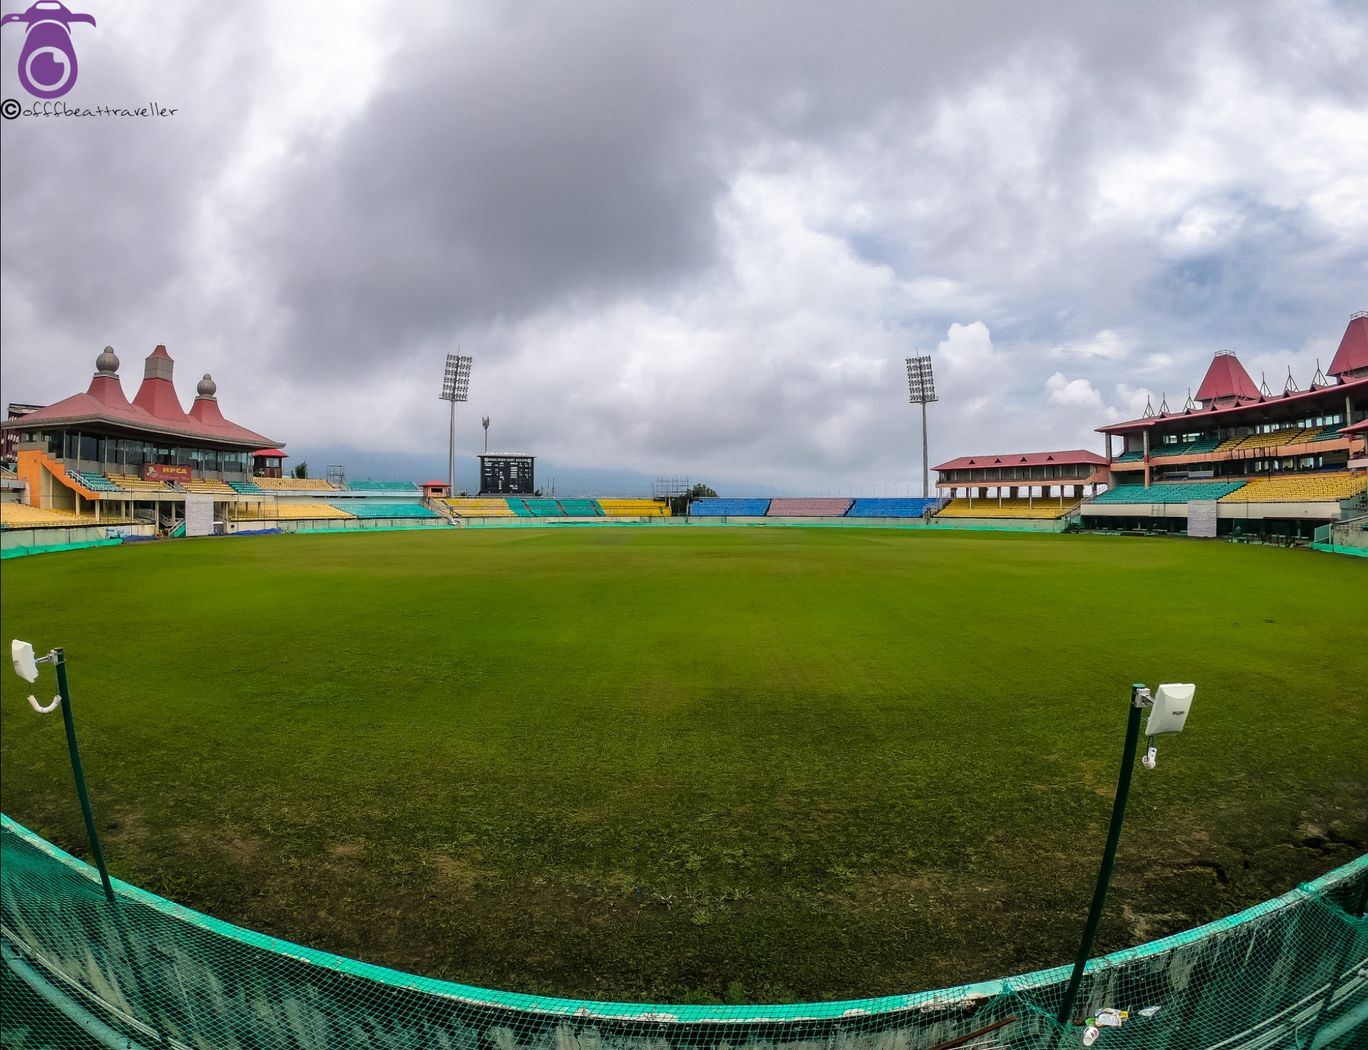 Photo of HPCA Cricket Stadium By Samir Anand